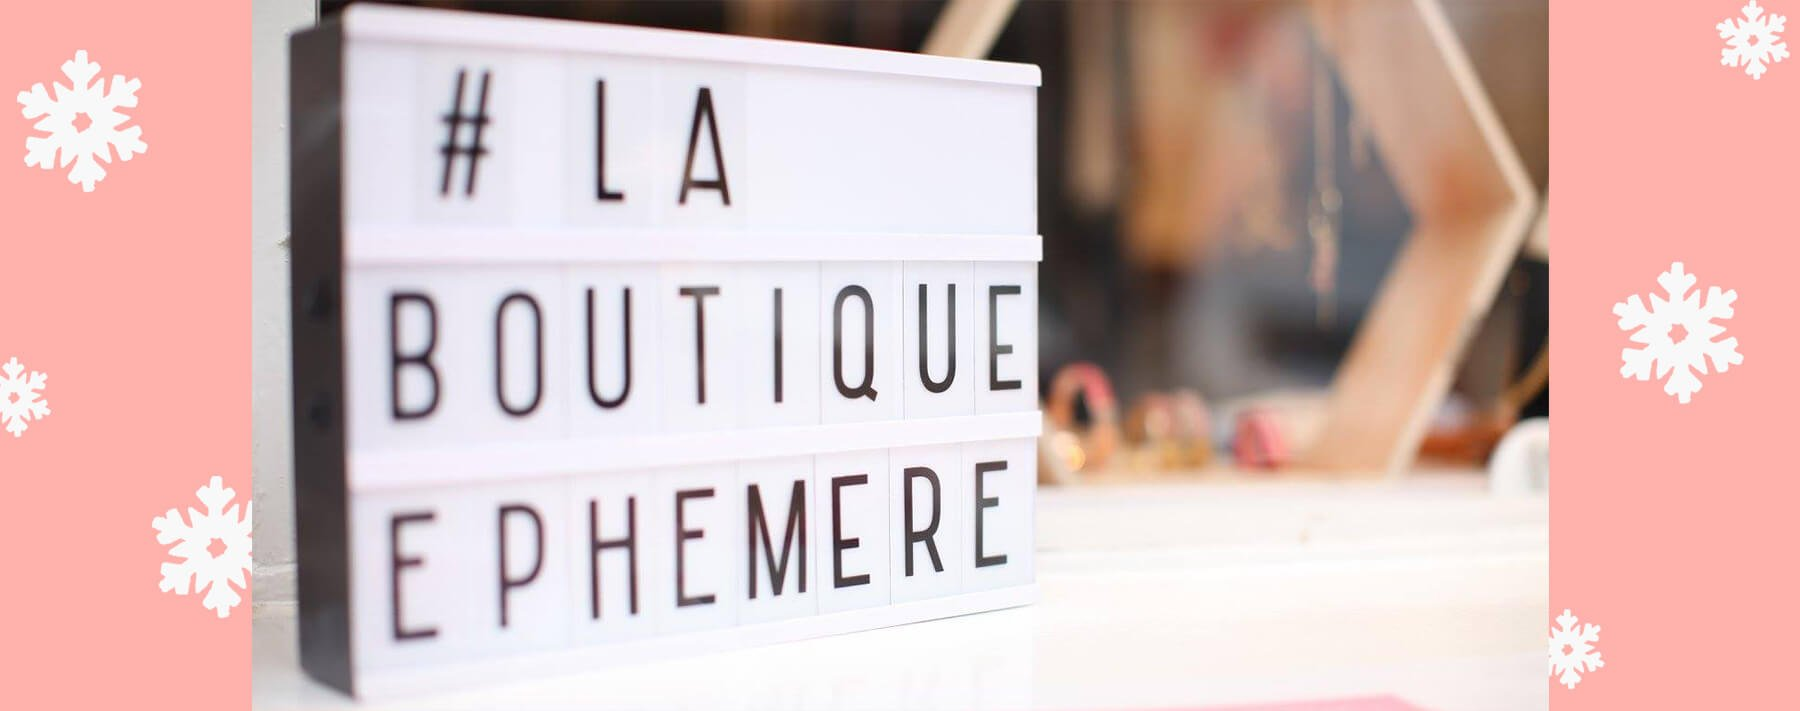 my dear calude à la boutique ephemere